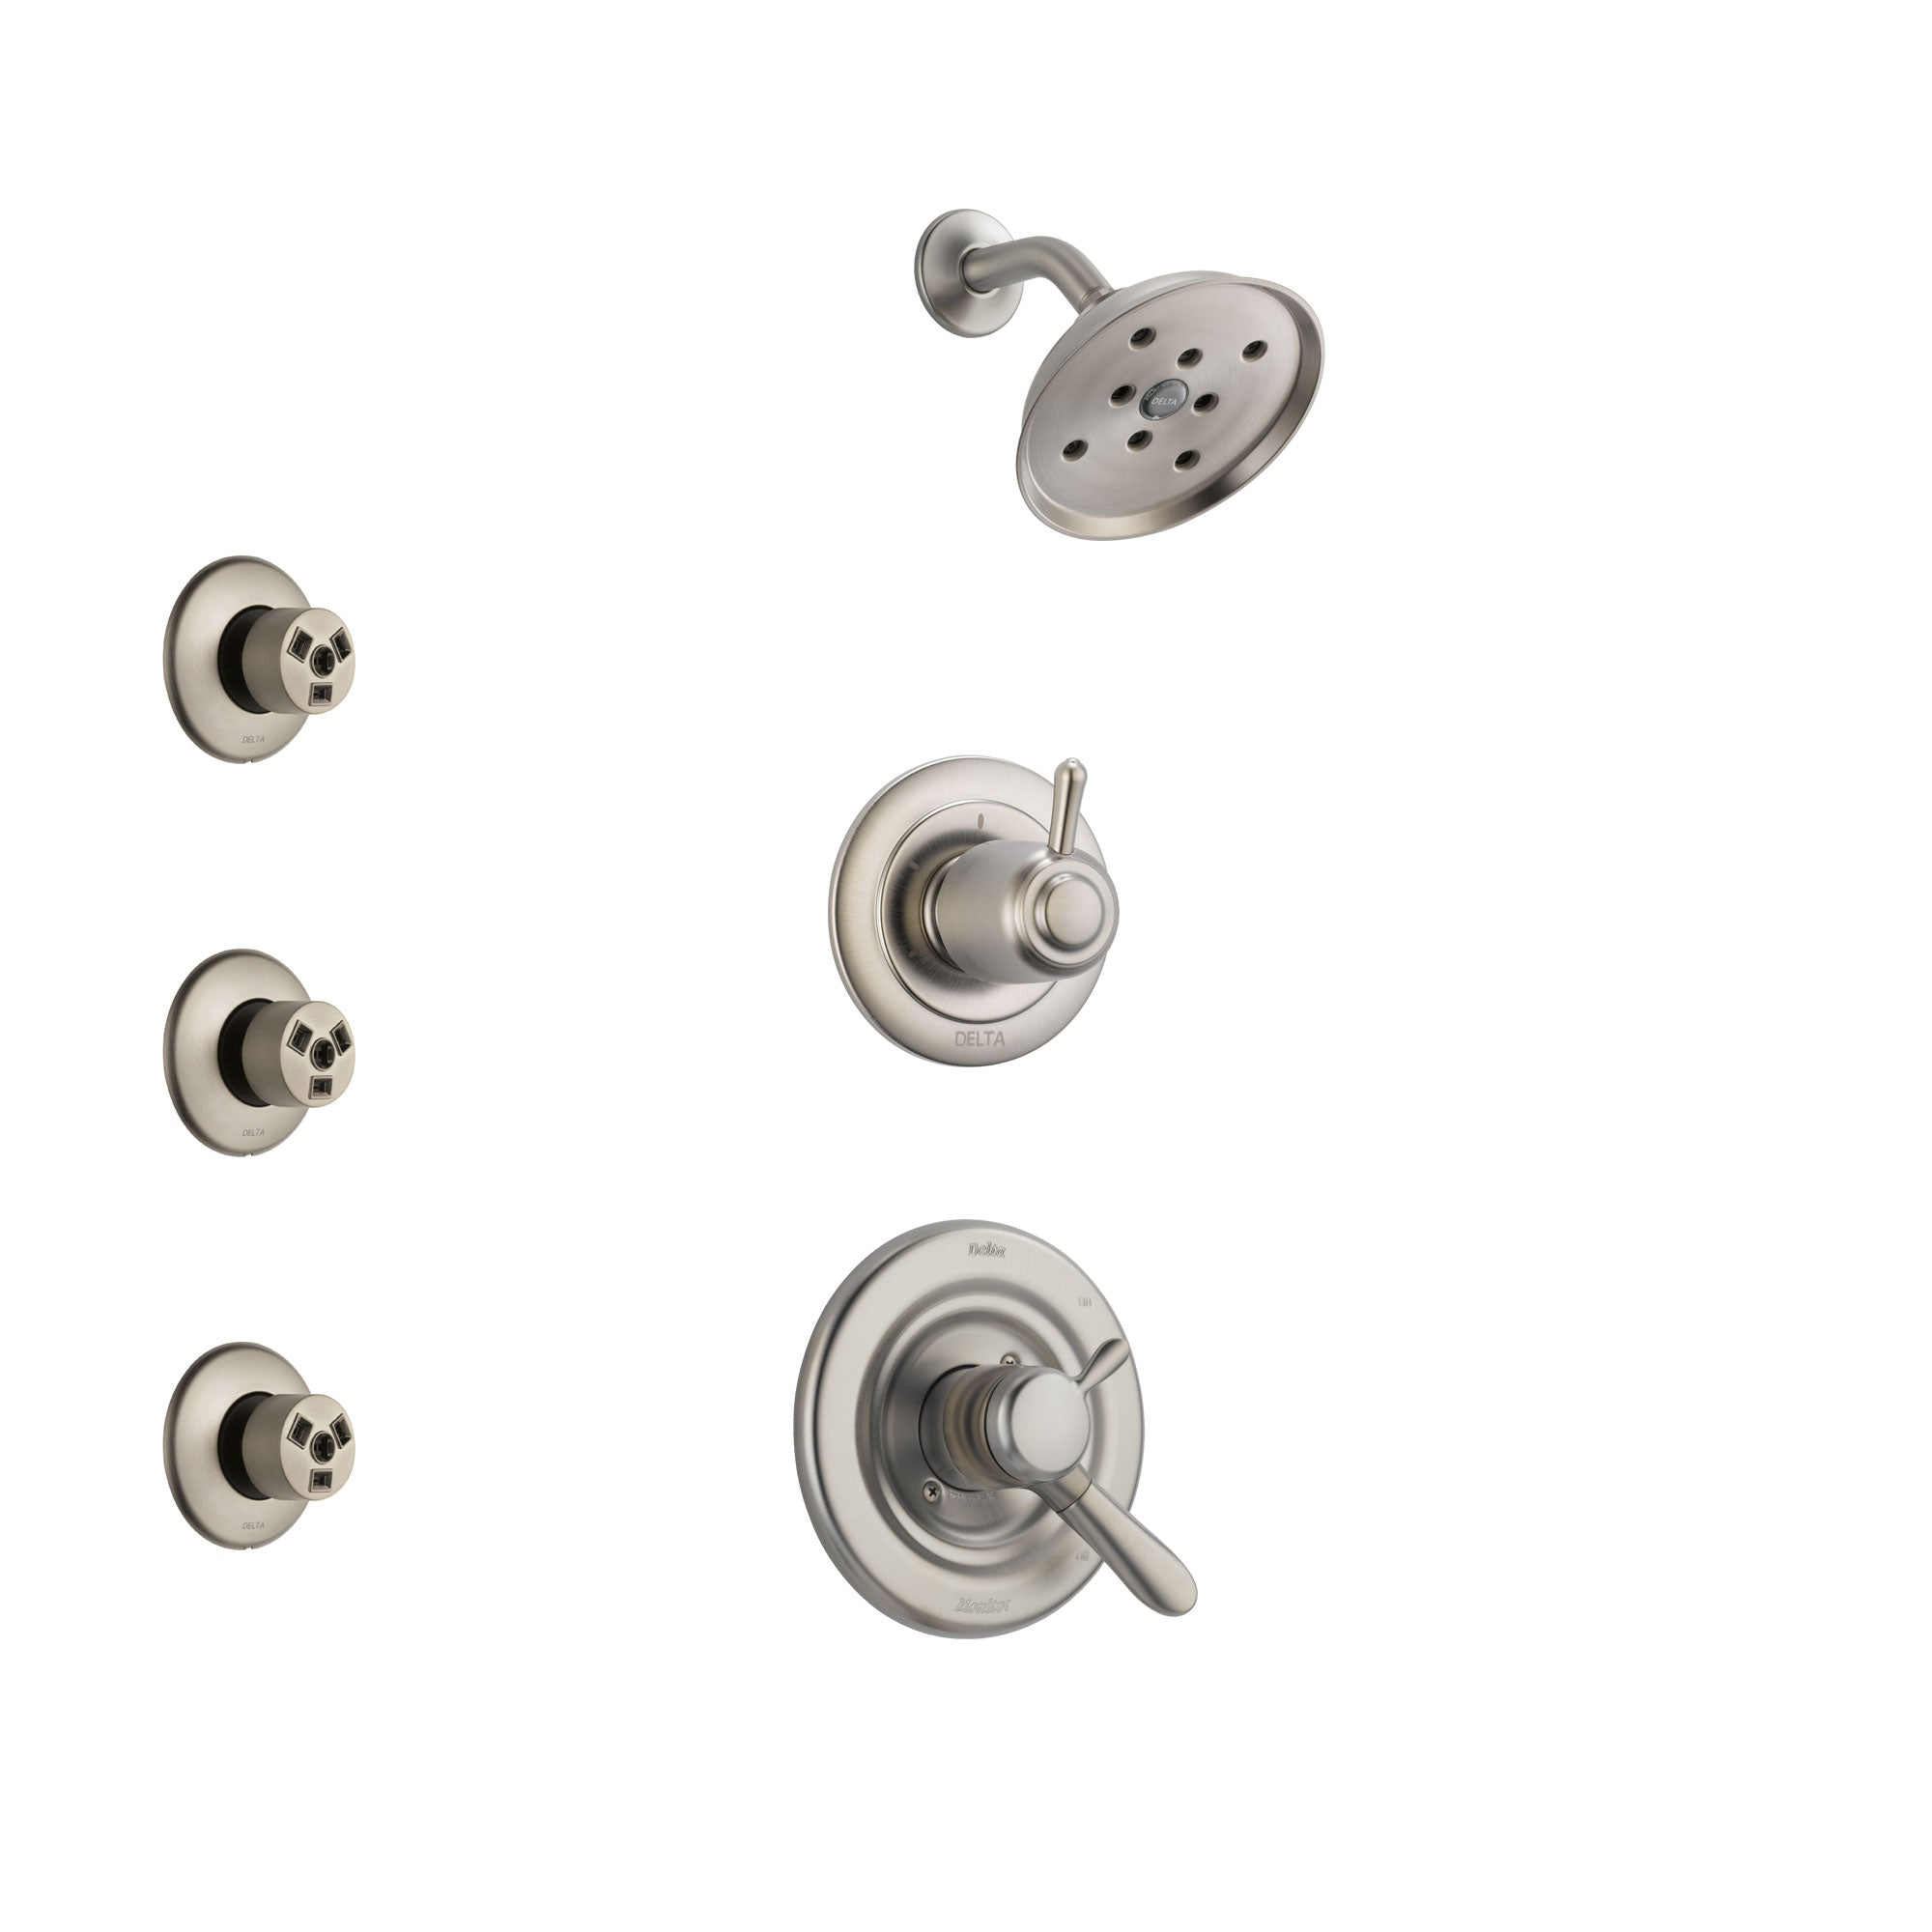 Delta Lahara Stainless Steel Finish Shower System with Dual Control Handle, 3-Setting Diverter, Showerhead, and 3 Body Sprays SS17238SS1